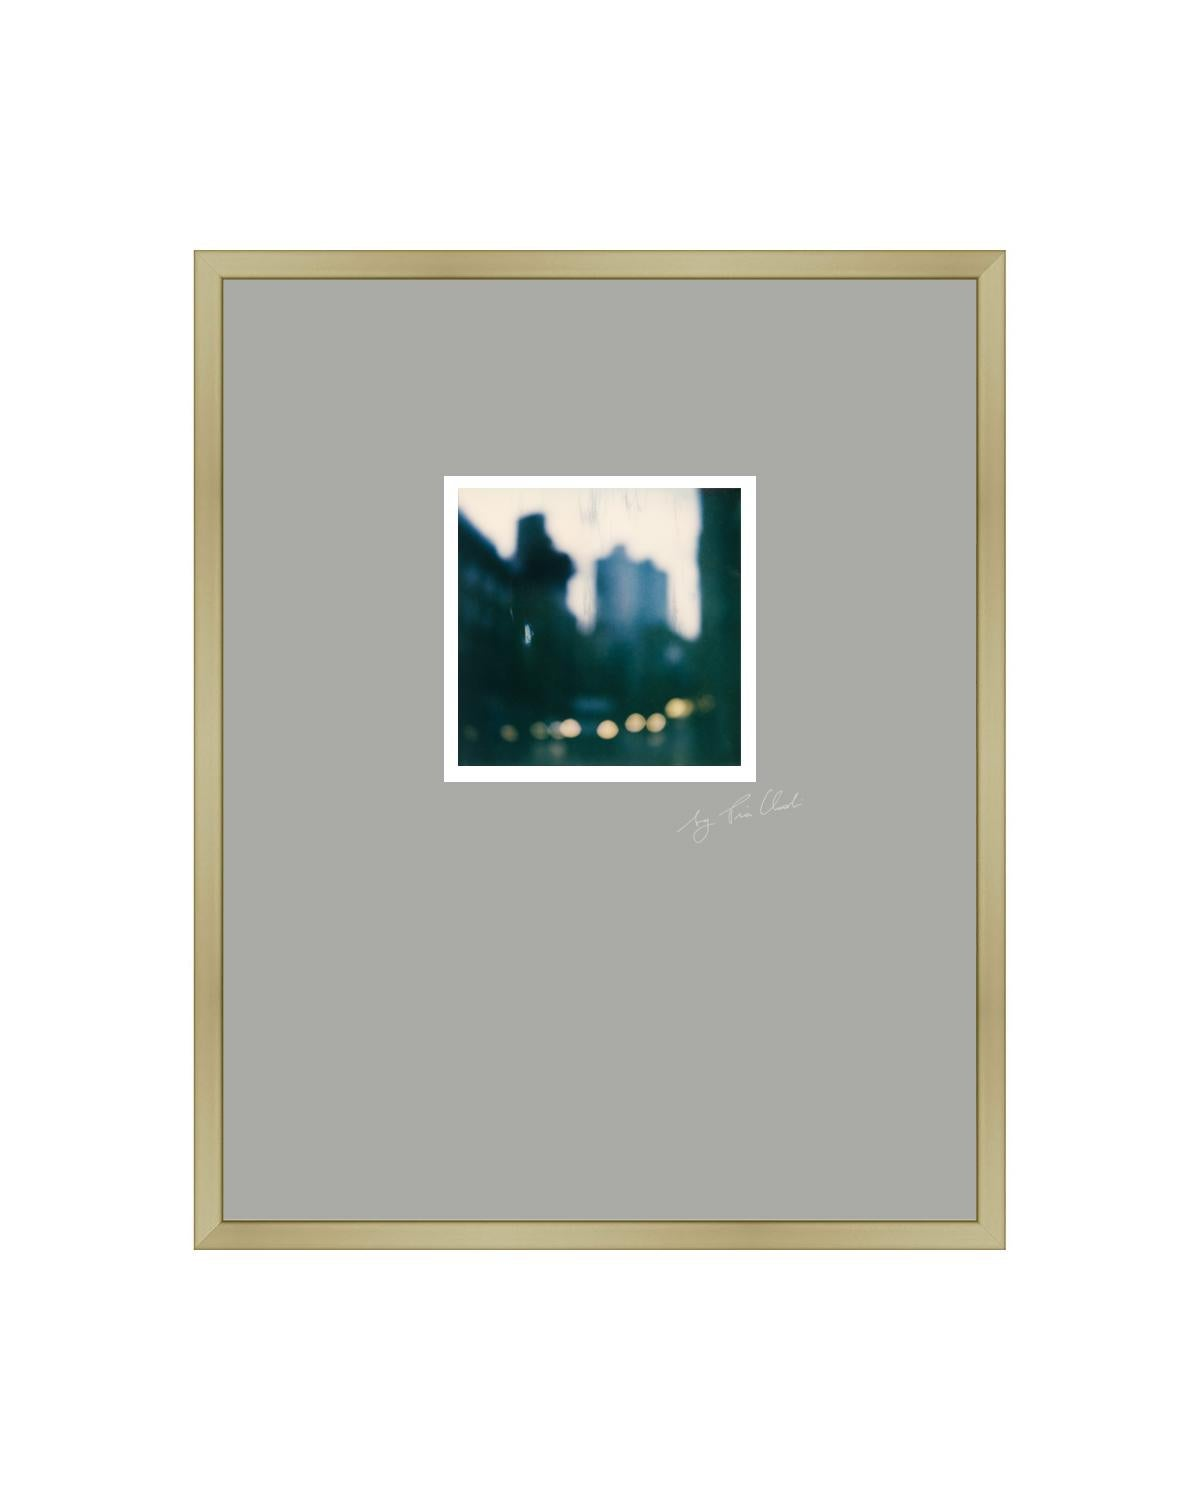 Paris Walks I - Framed Contemporary Landscape Polaroid Original Photograph